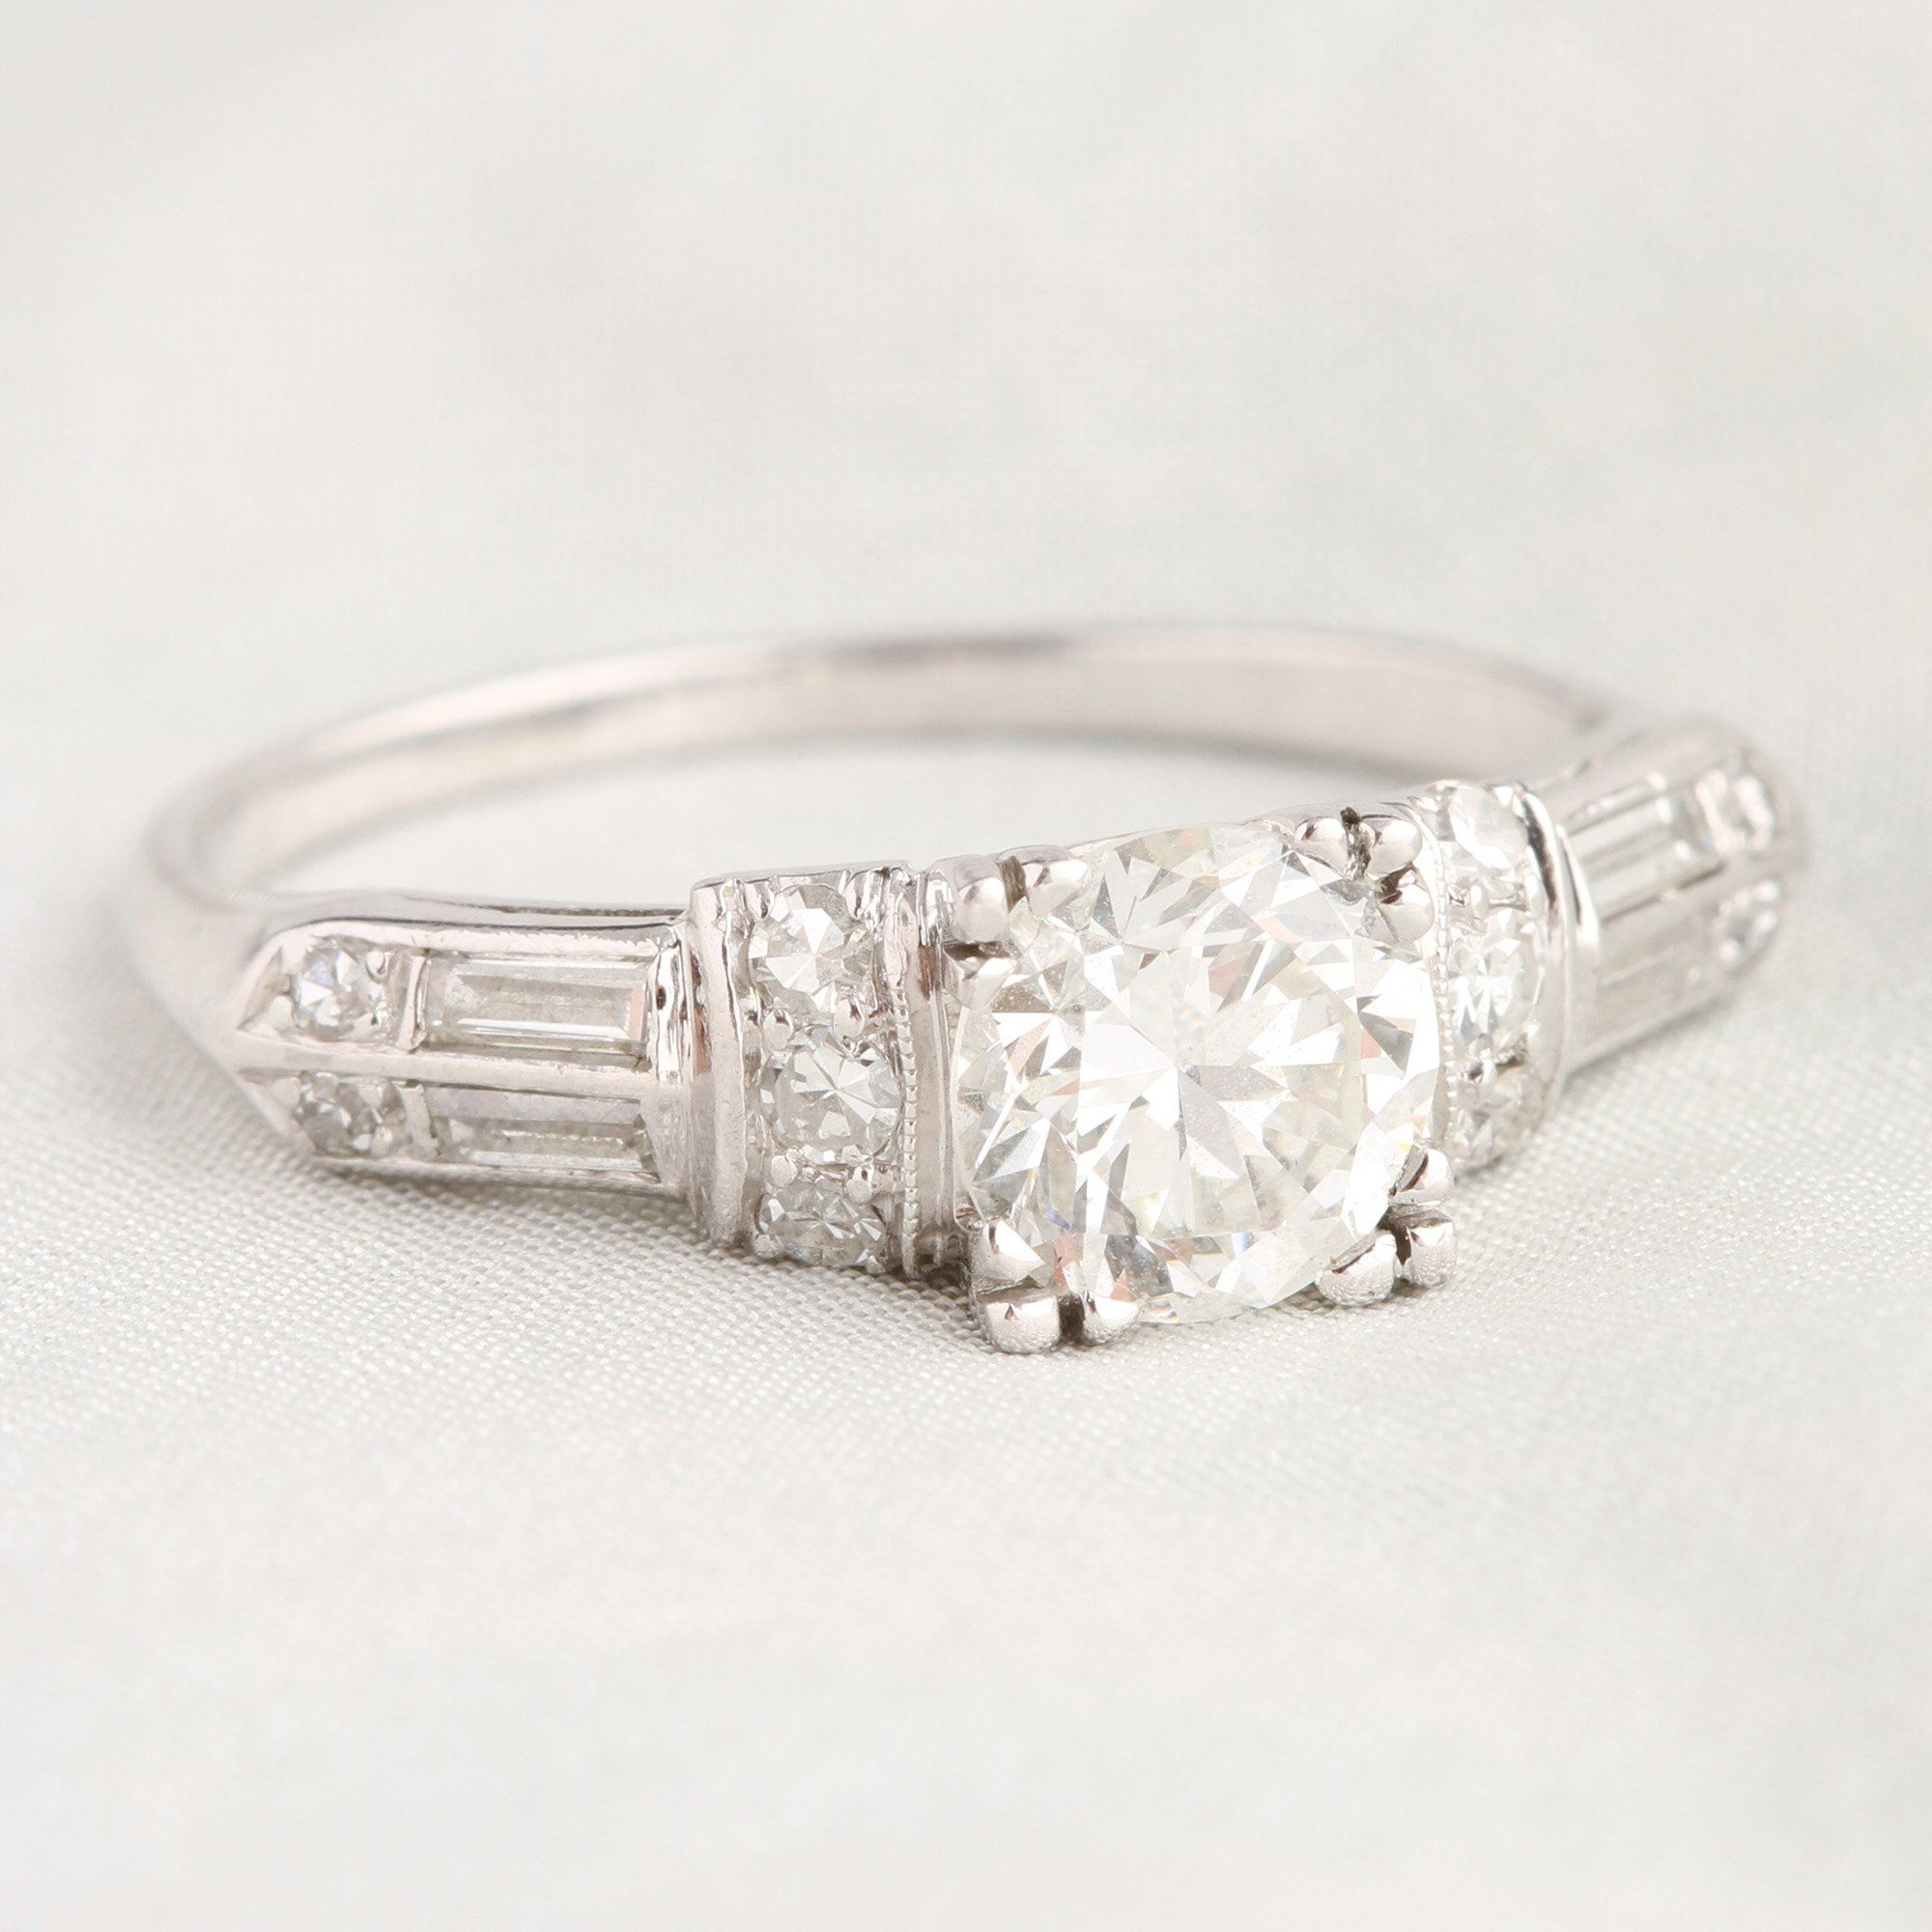 1940s 1.5ctw Diamond Engagement Ring with Gradient Shoulders